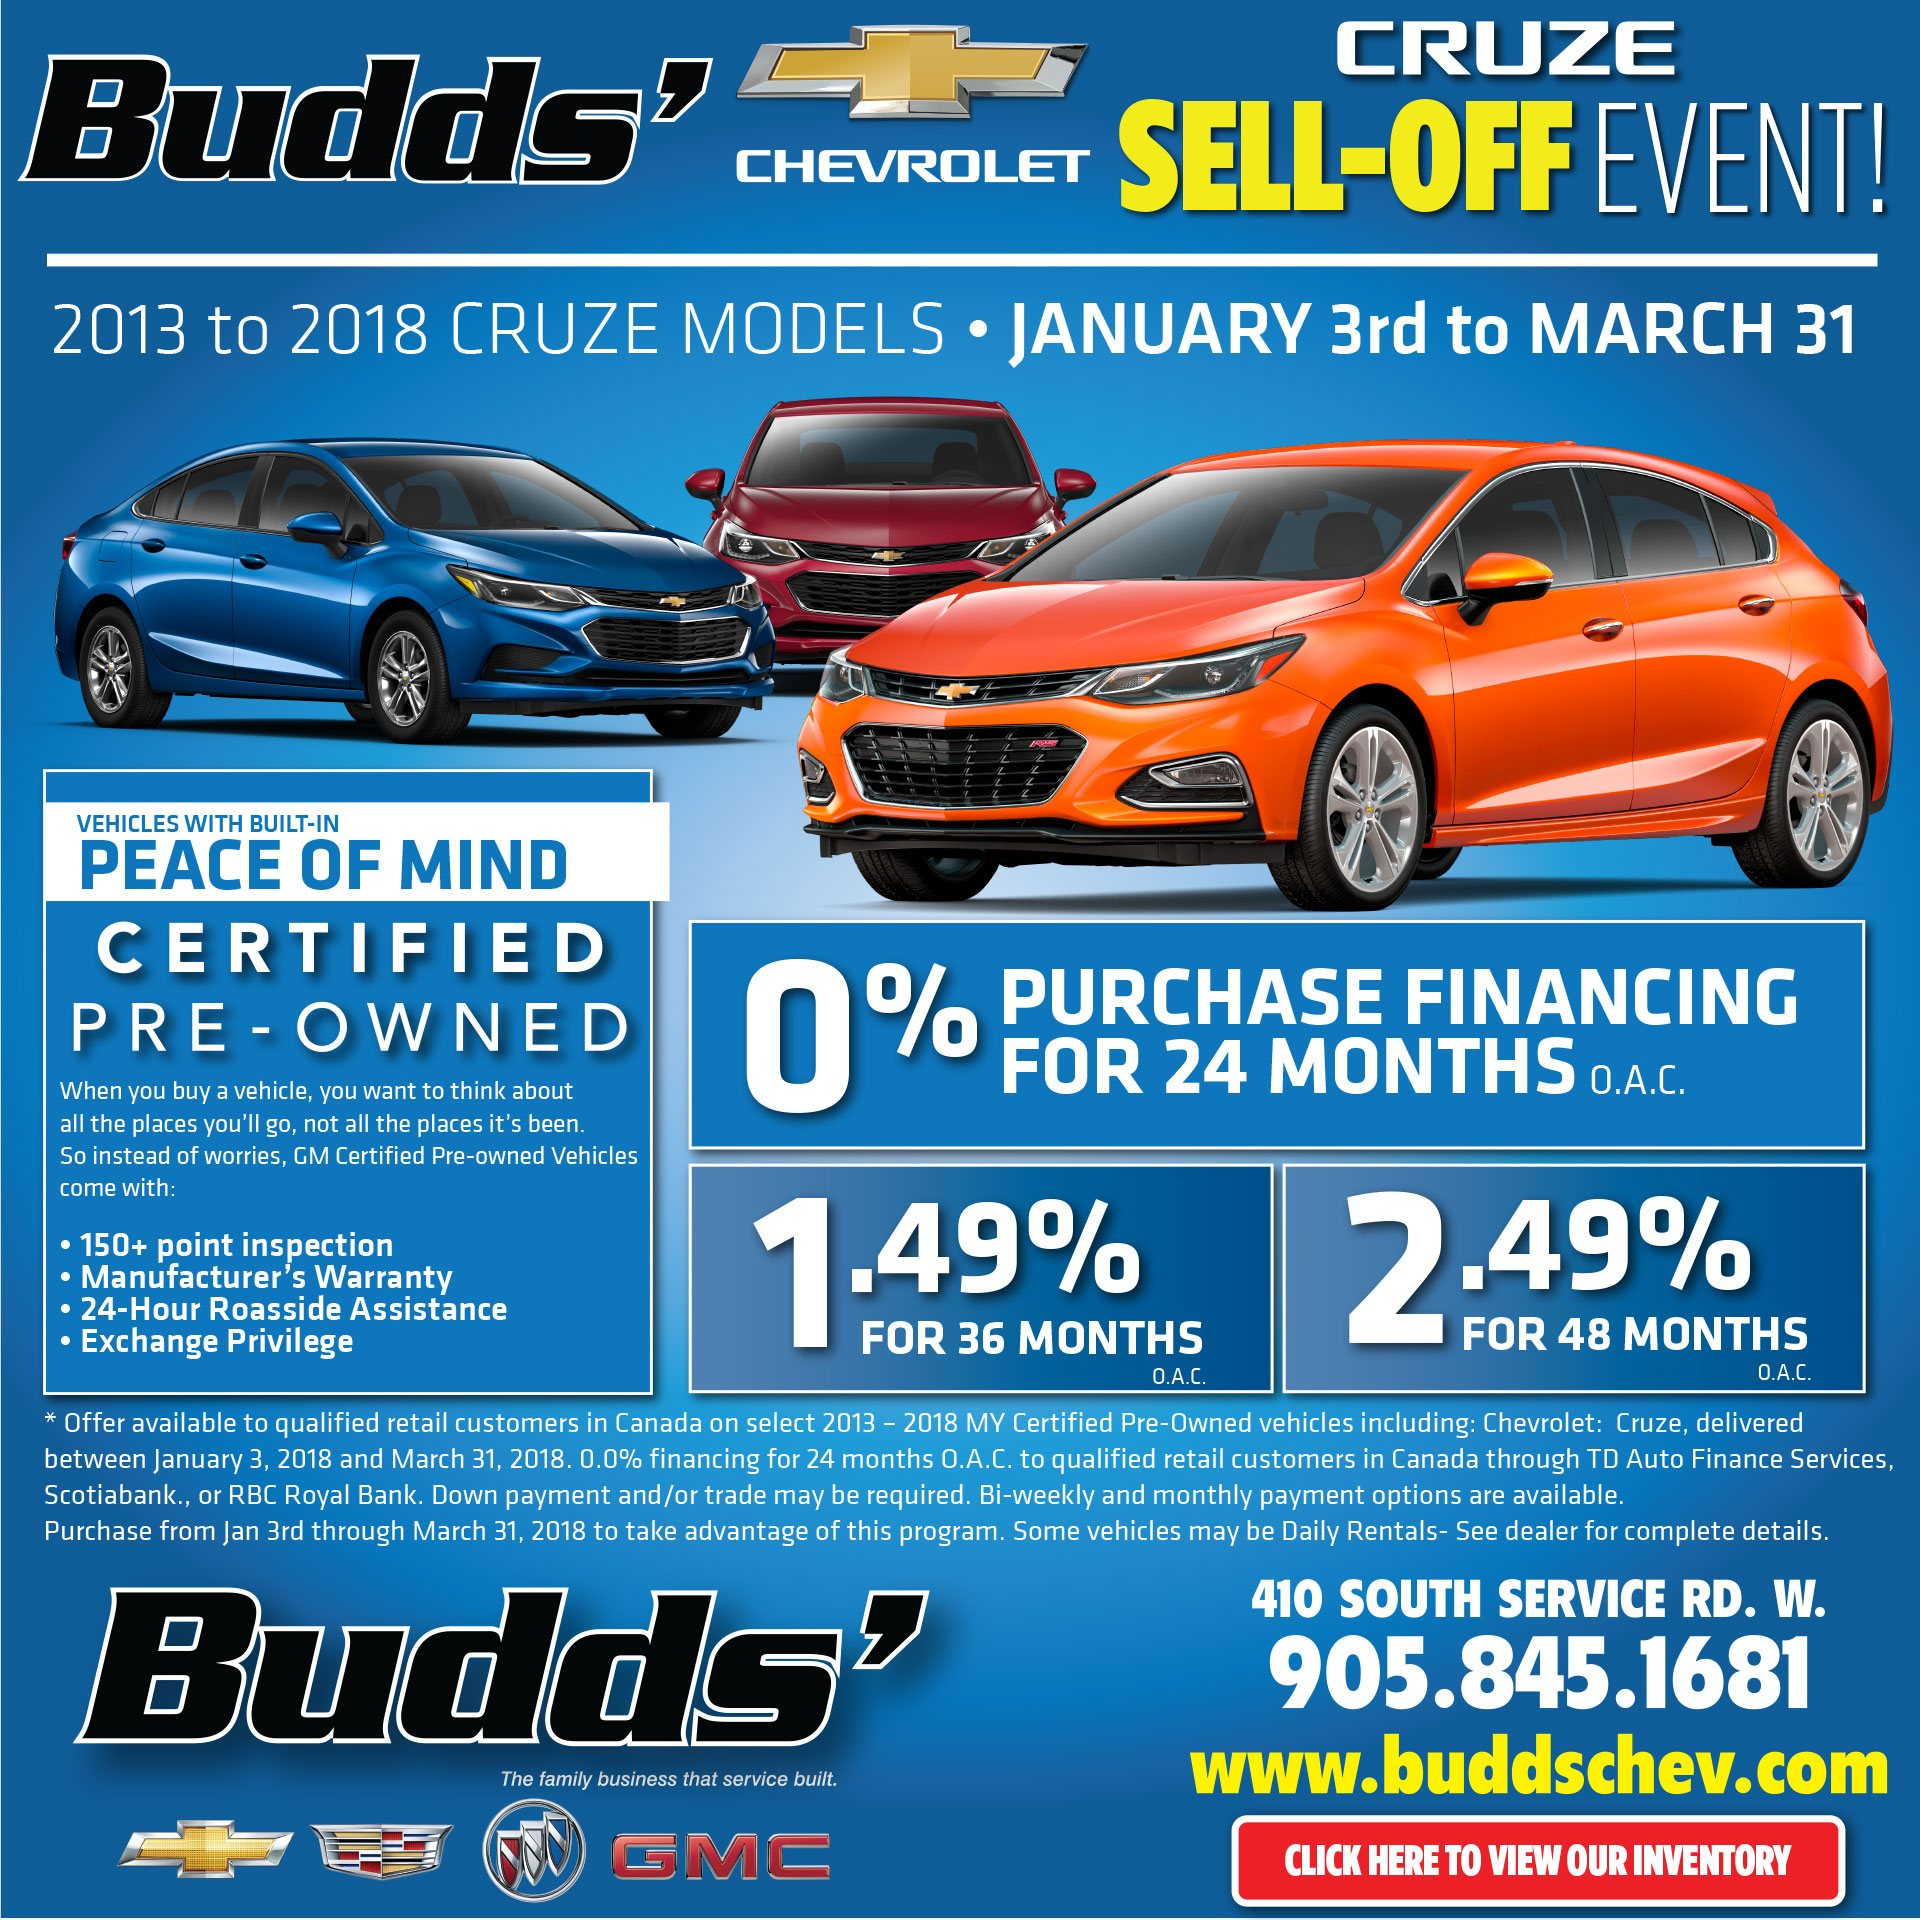 Cruze Sell Off Event